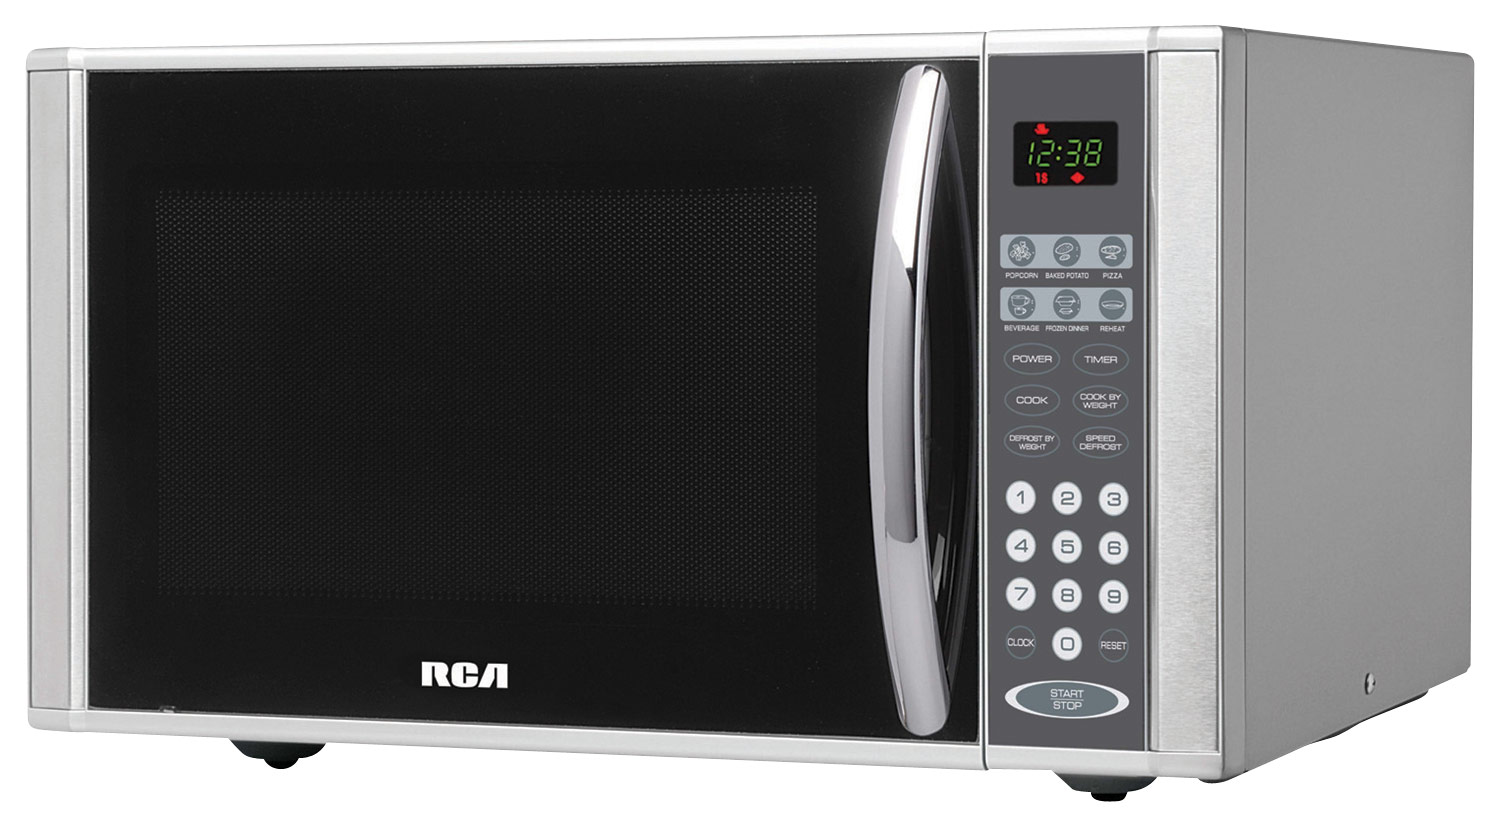 rca 1 1 cu ft mid size microwave stainless steel